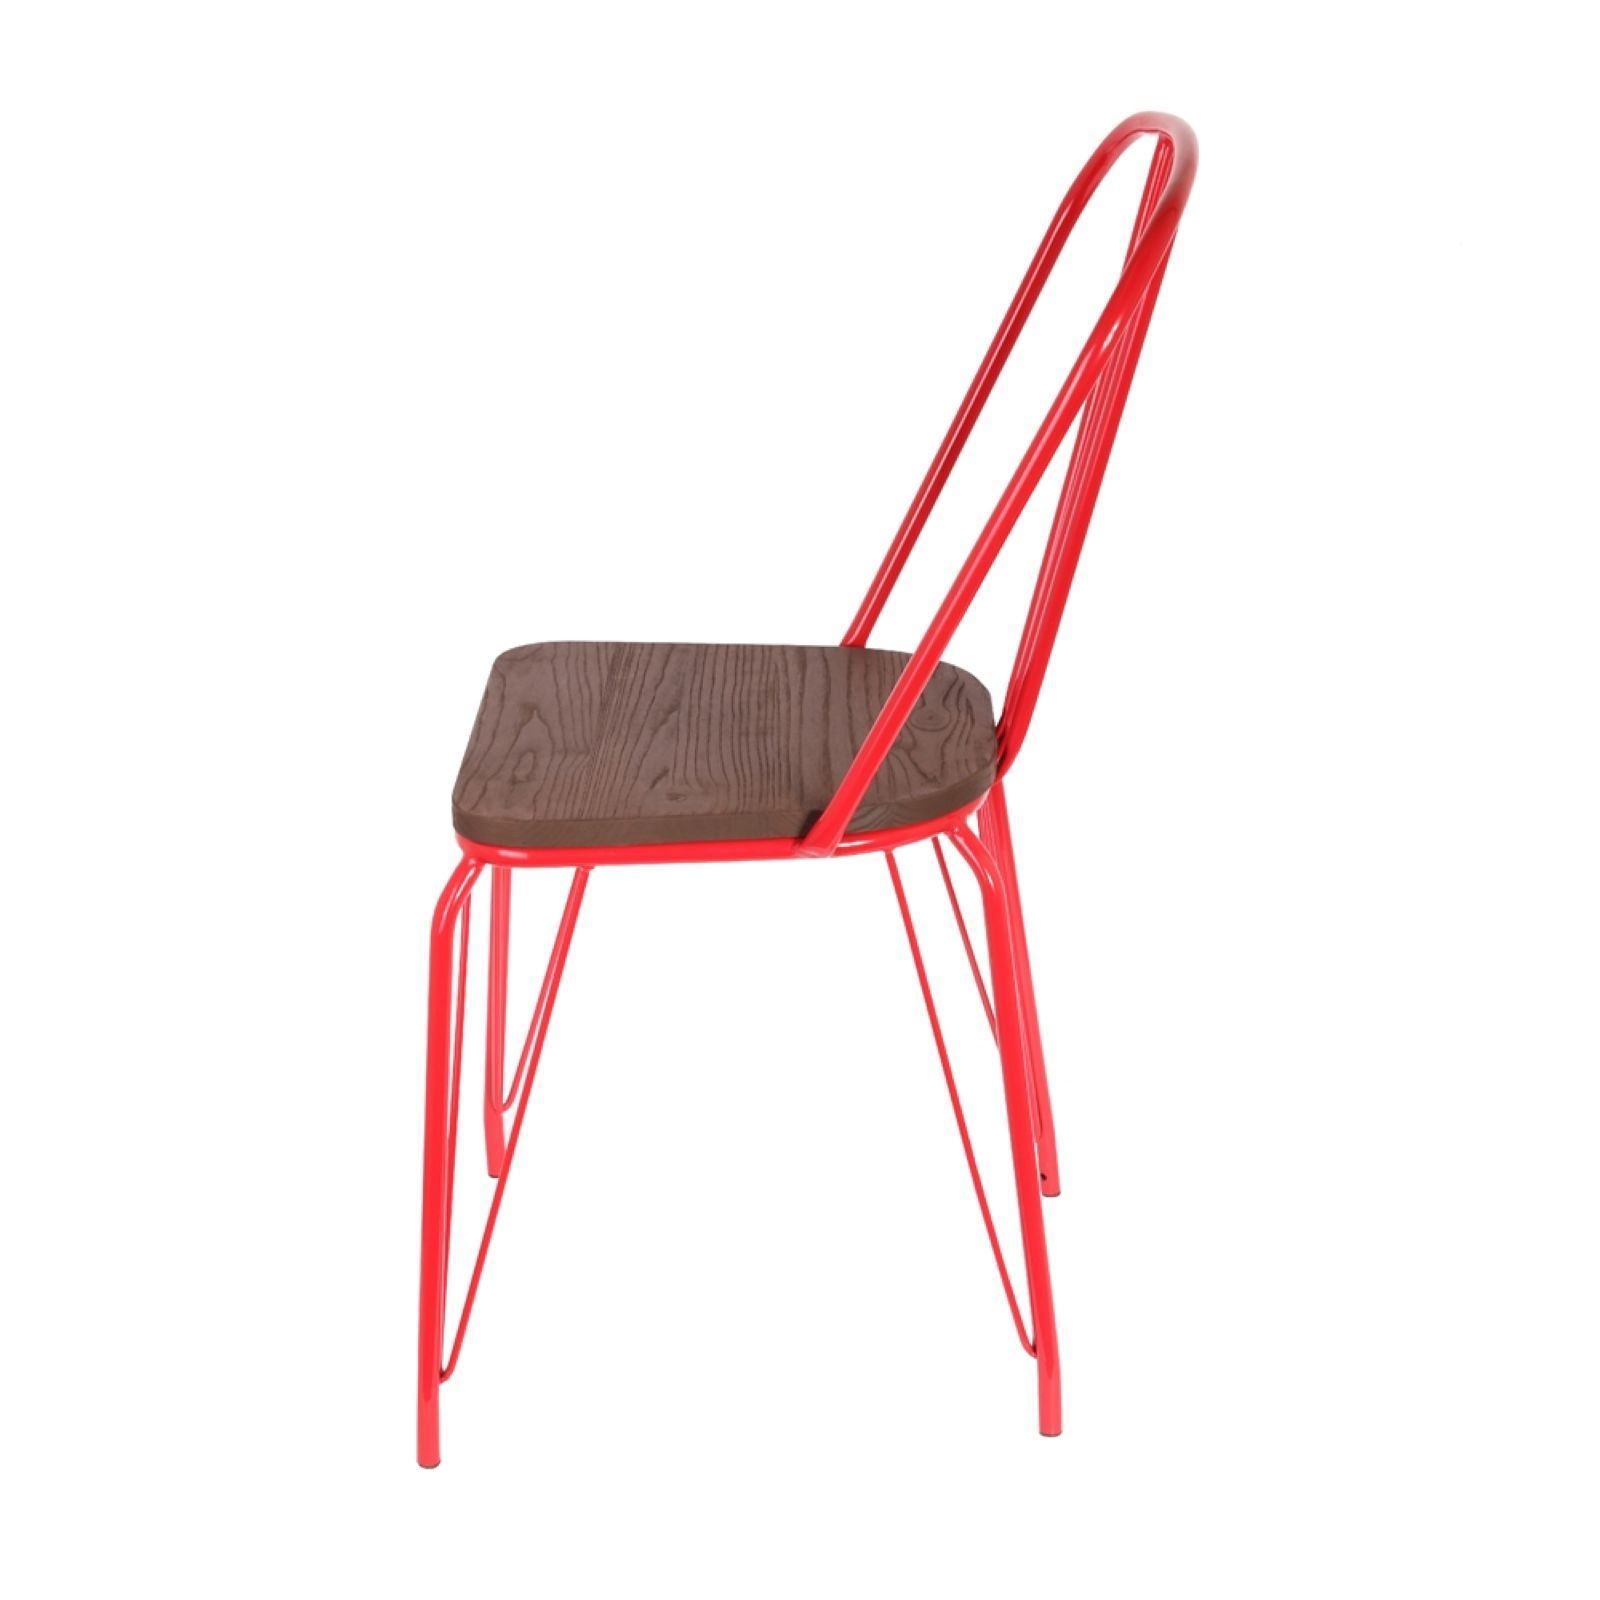 The home deco factory chaise rouge brandalley for Chaise factory rouge